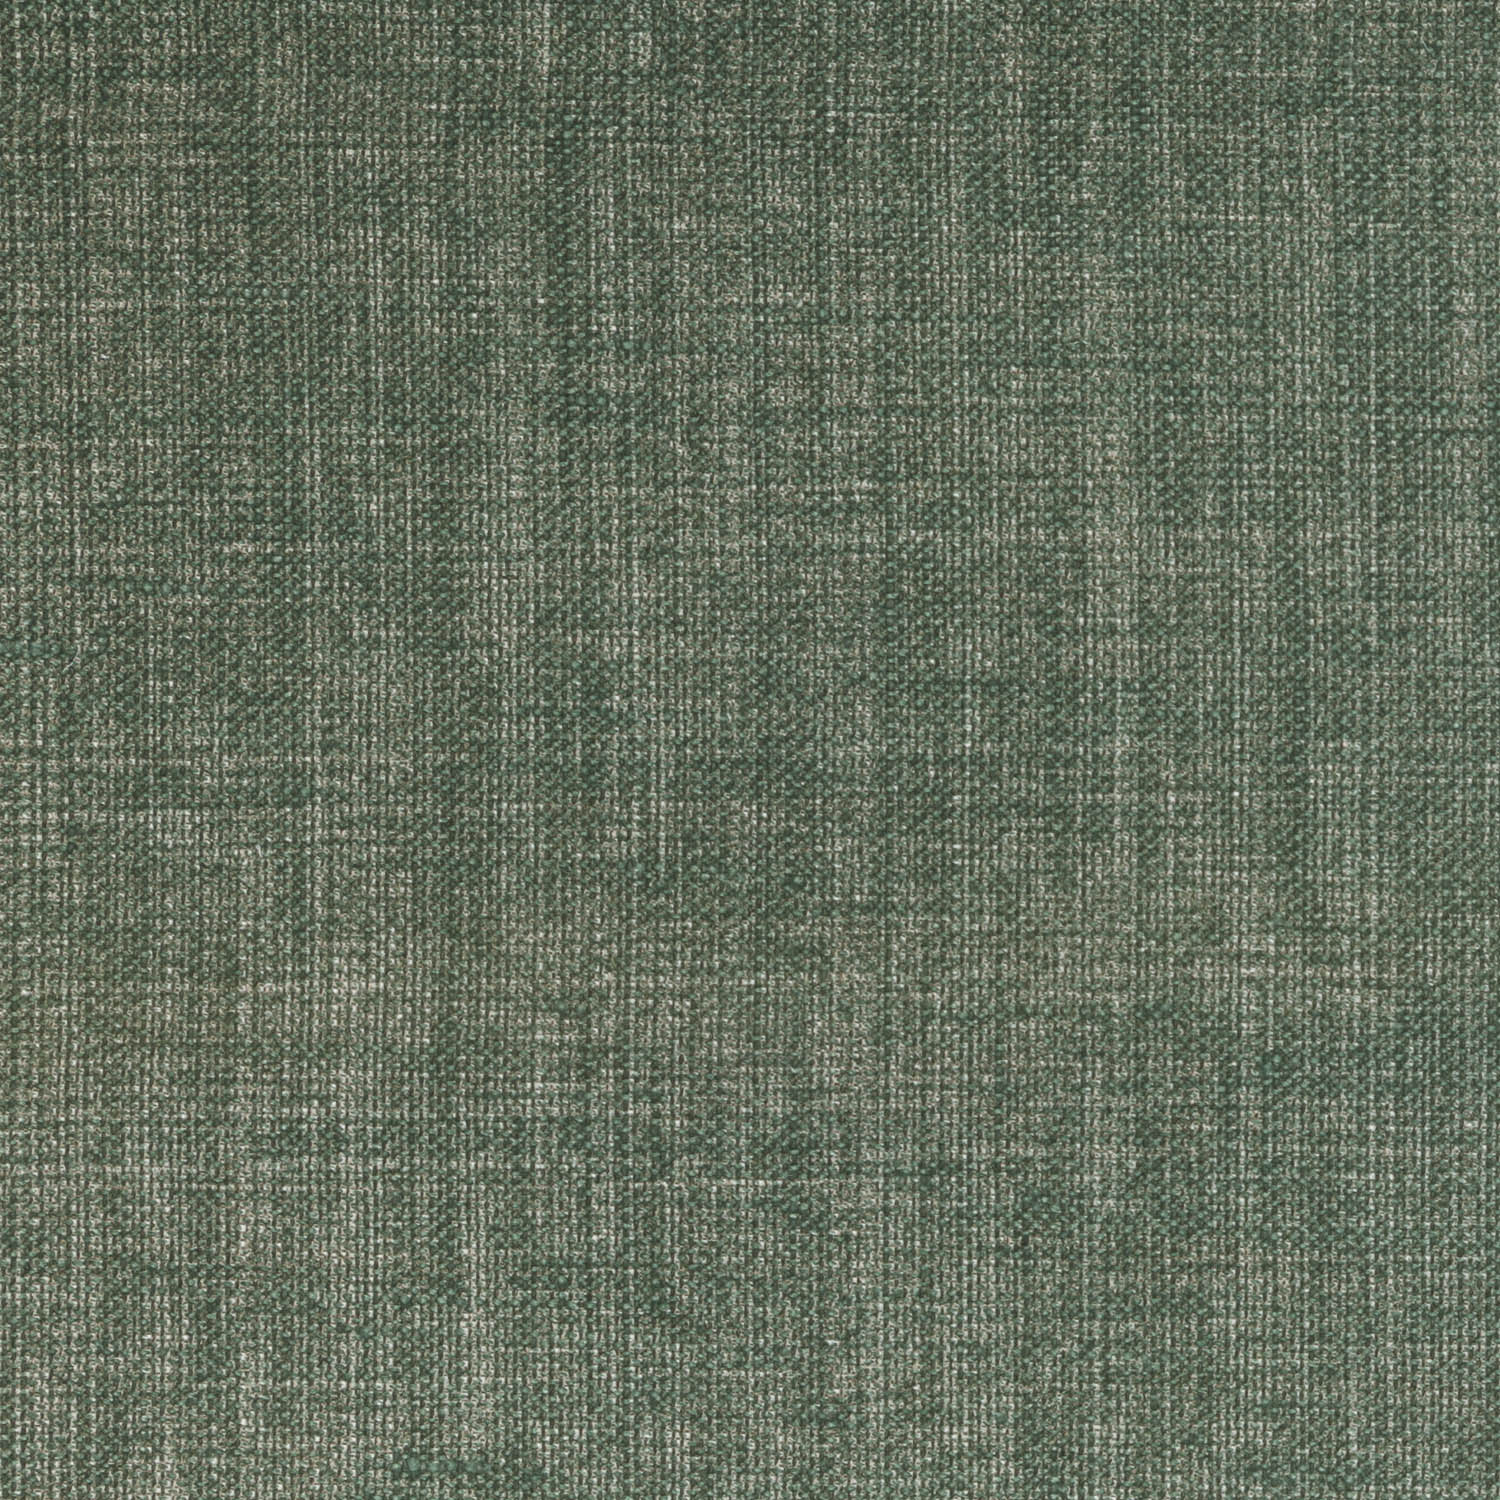 n-024-green-plain-linen-parsons-green-1